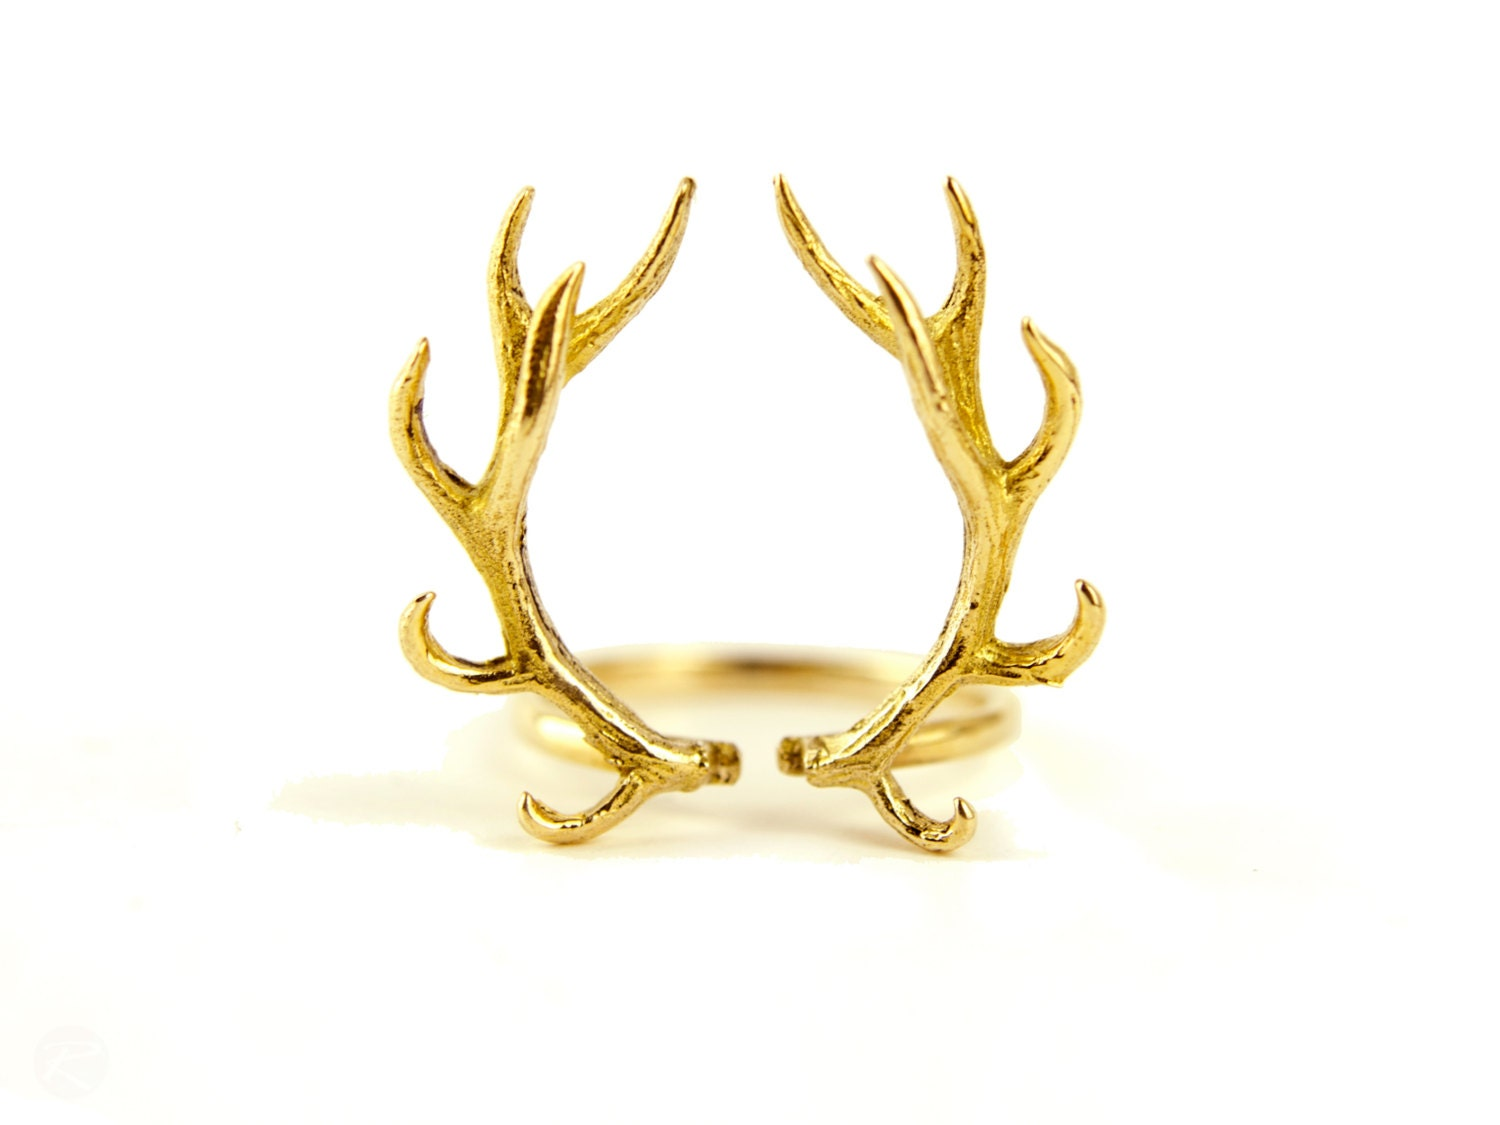 deer antler ring antique gold plated silver adjustable ring